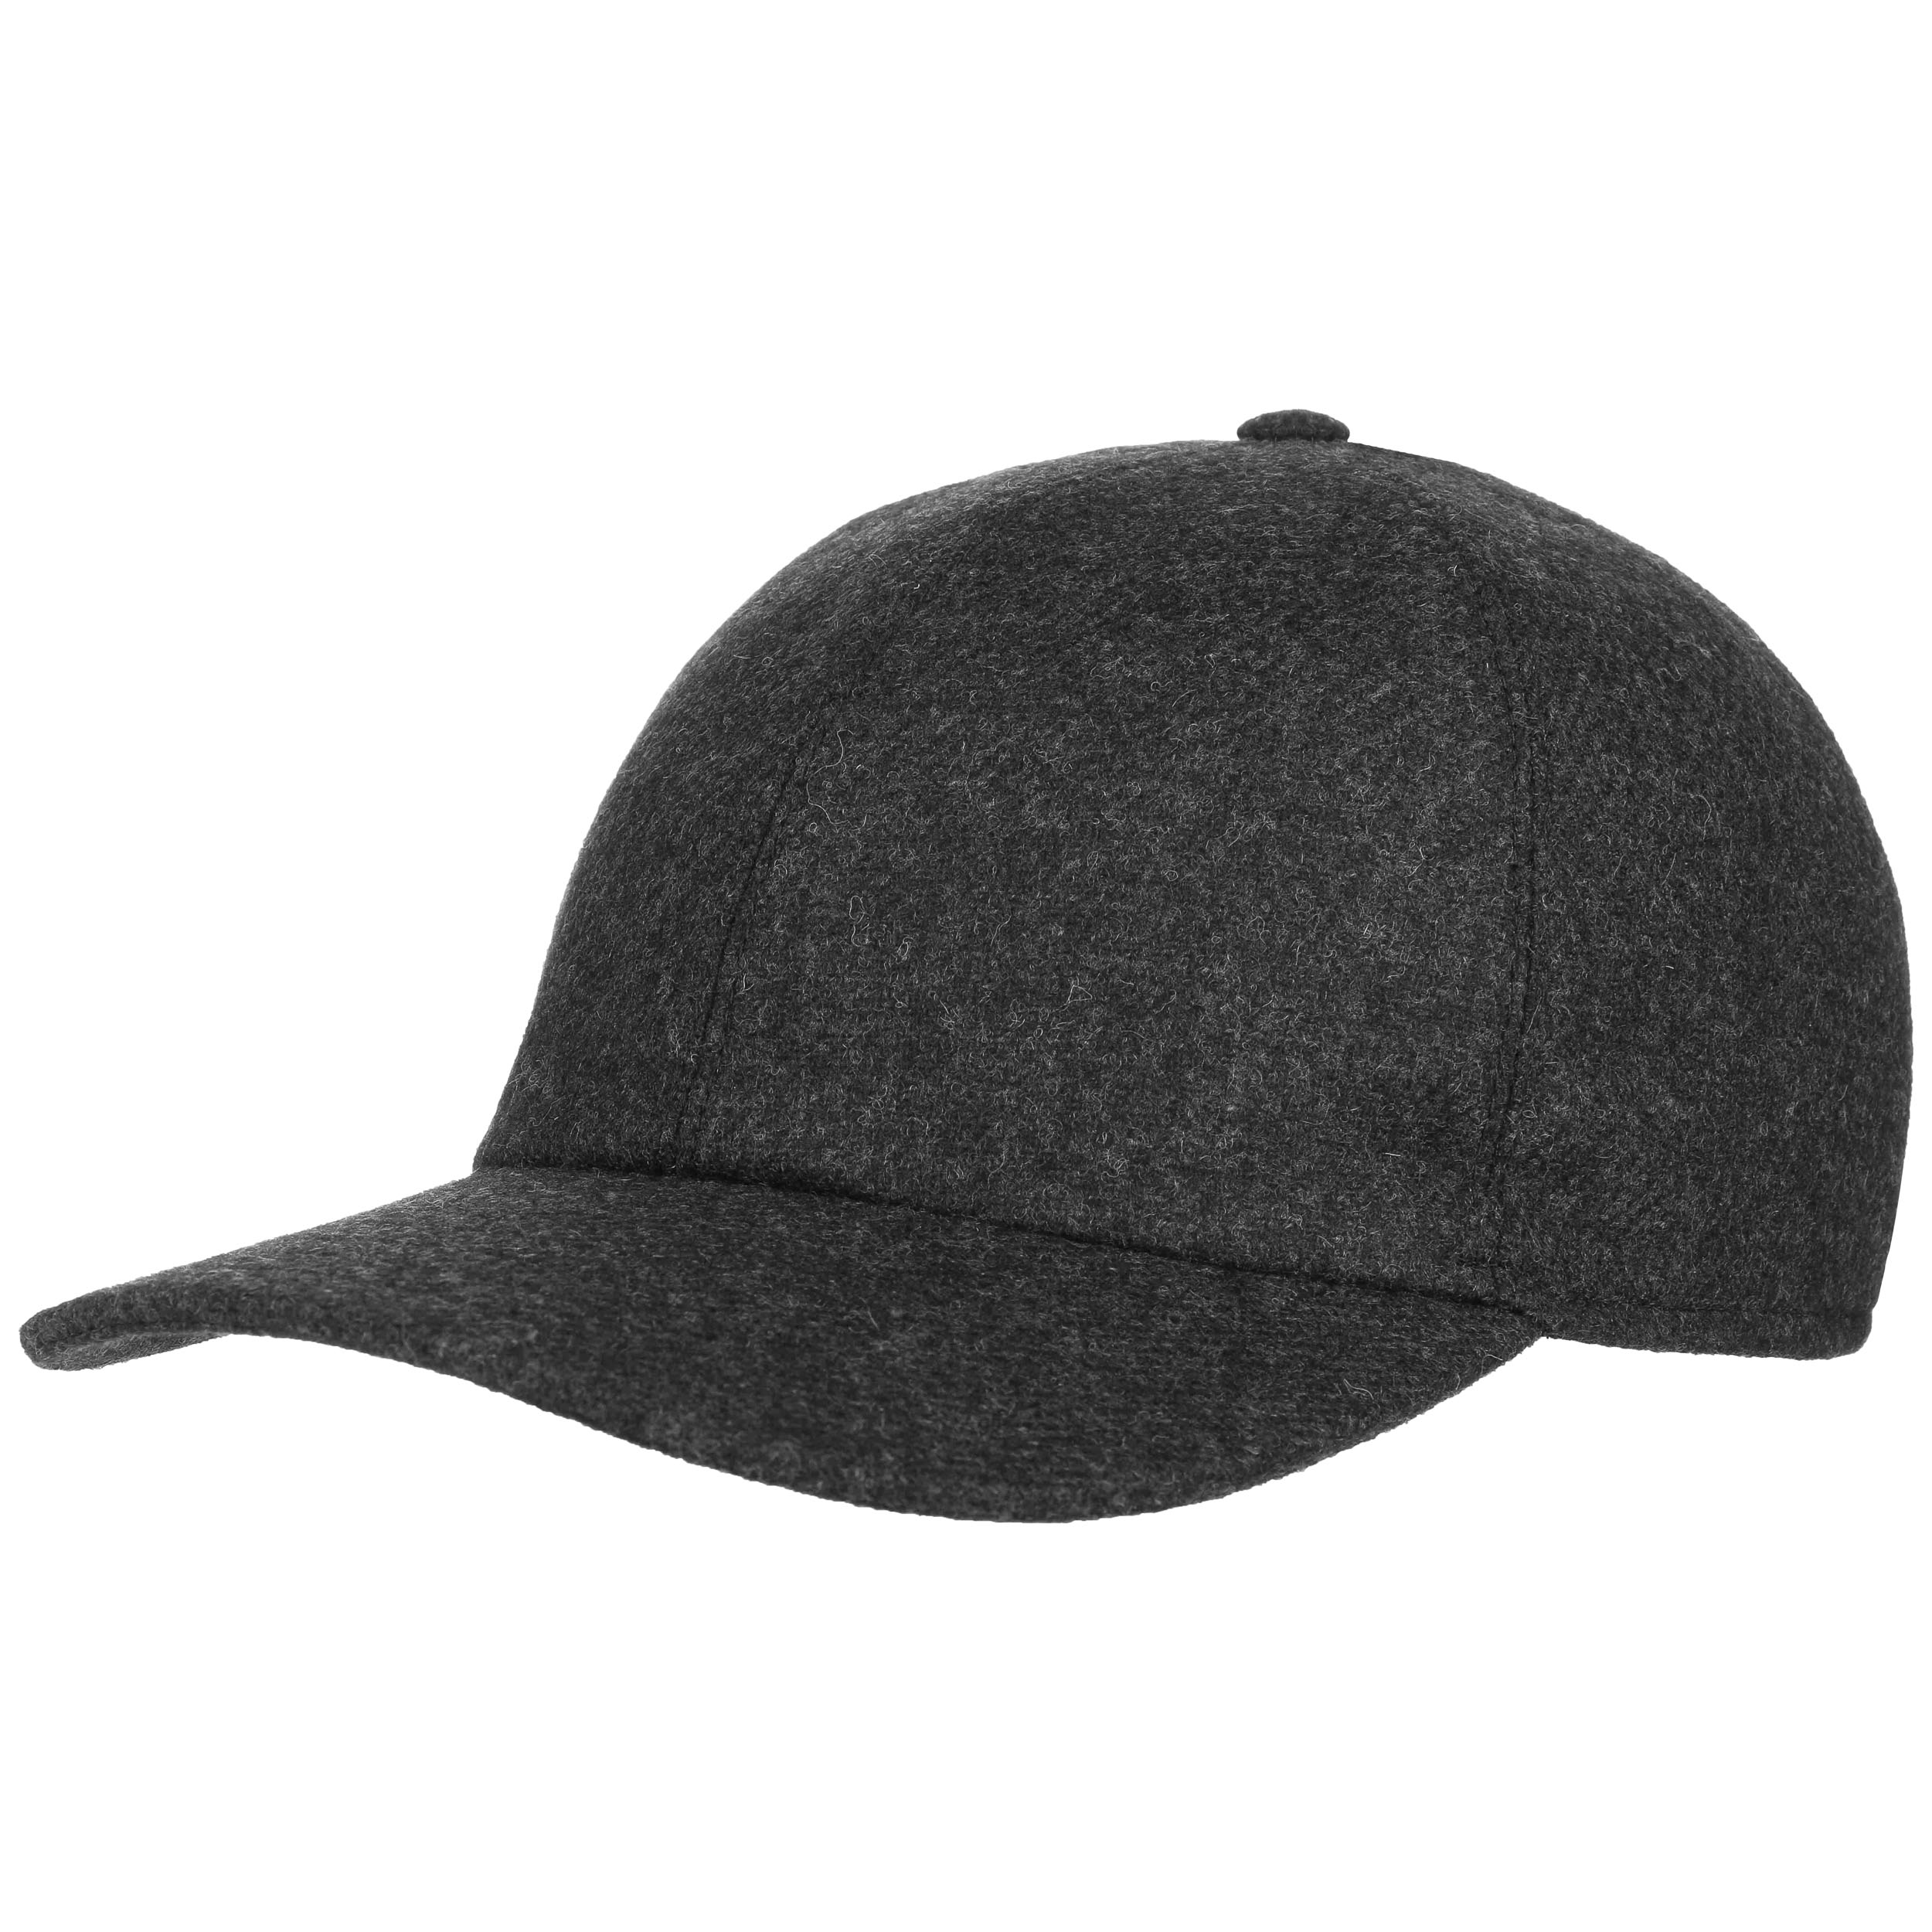 Wool Baseball Cap | Flannel Baseball Caps | Hats with Leather Strap